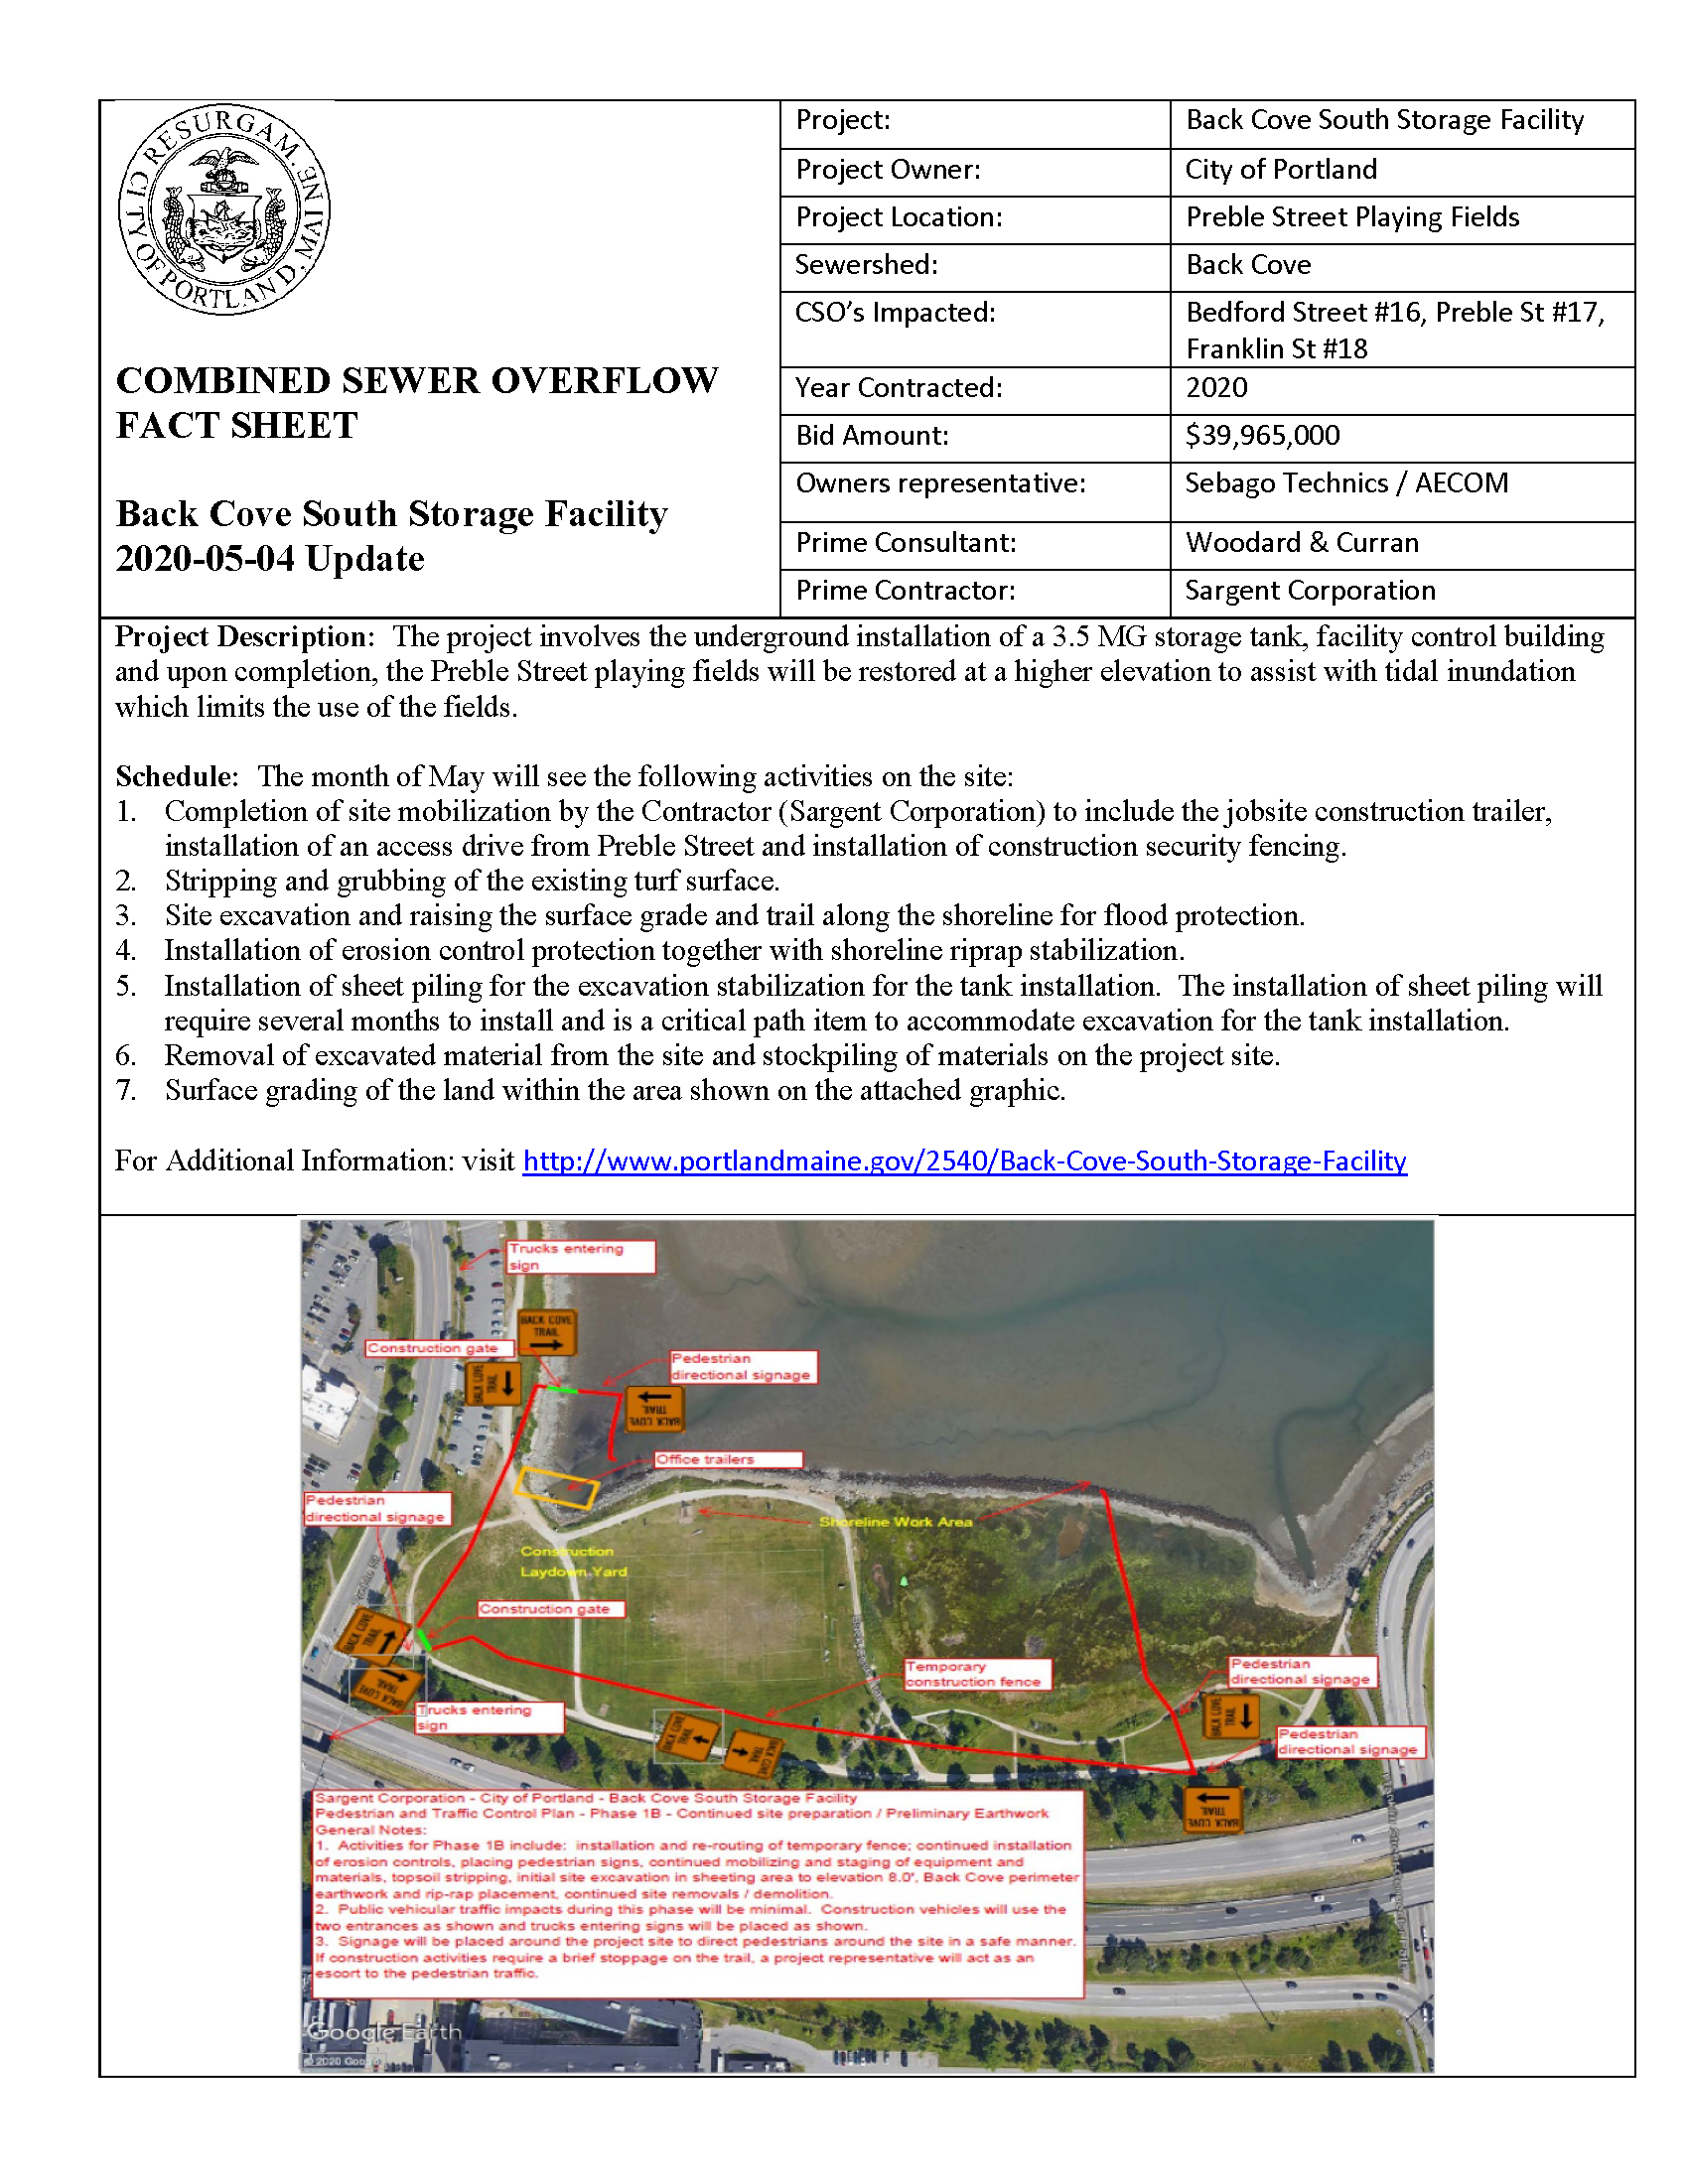 BCSSF 2020-05-07 May Fact Sheet Update_Page_1